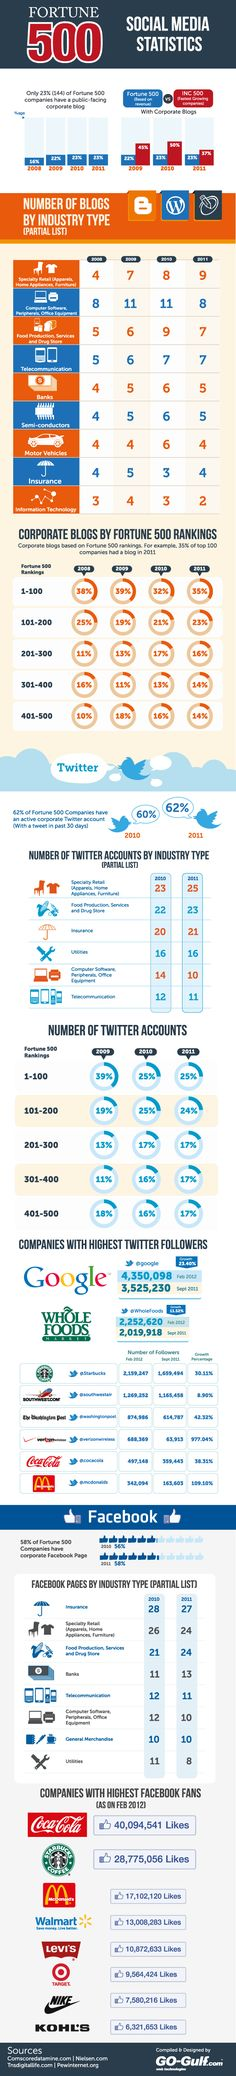 Fortune 500 Social Media Statistics    Not exactly massive figures from the big companies. Is it harder for larger companies to engage with consumers on social media?    Posted: 30 March 2012 - res. 595 x 5,236